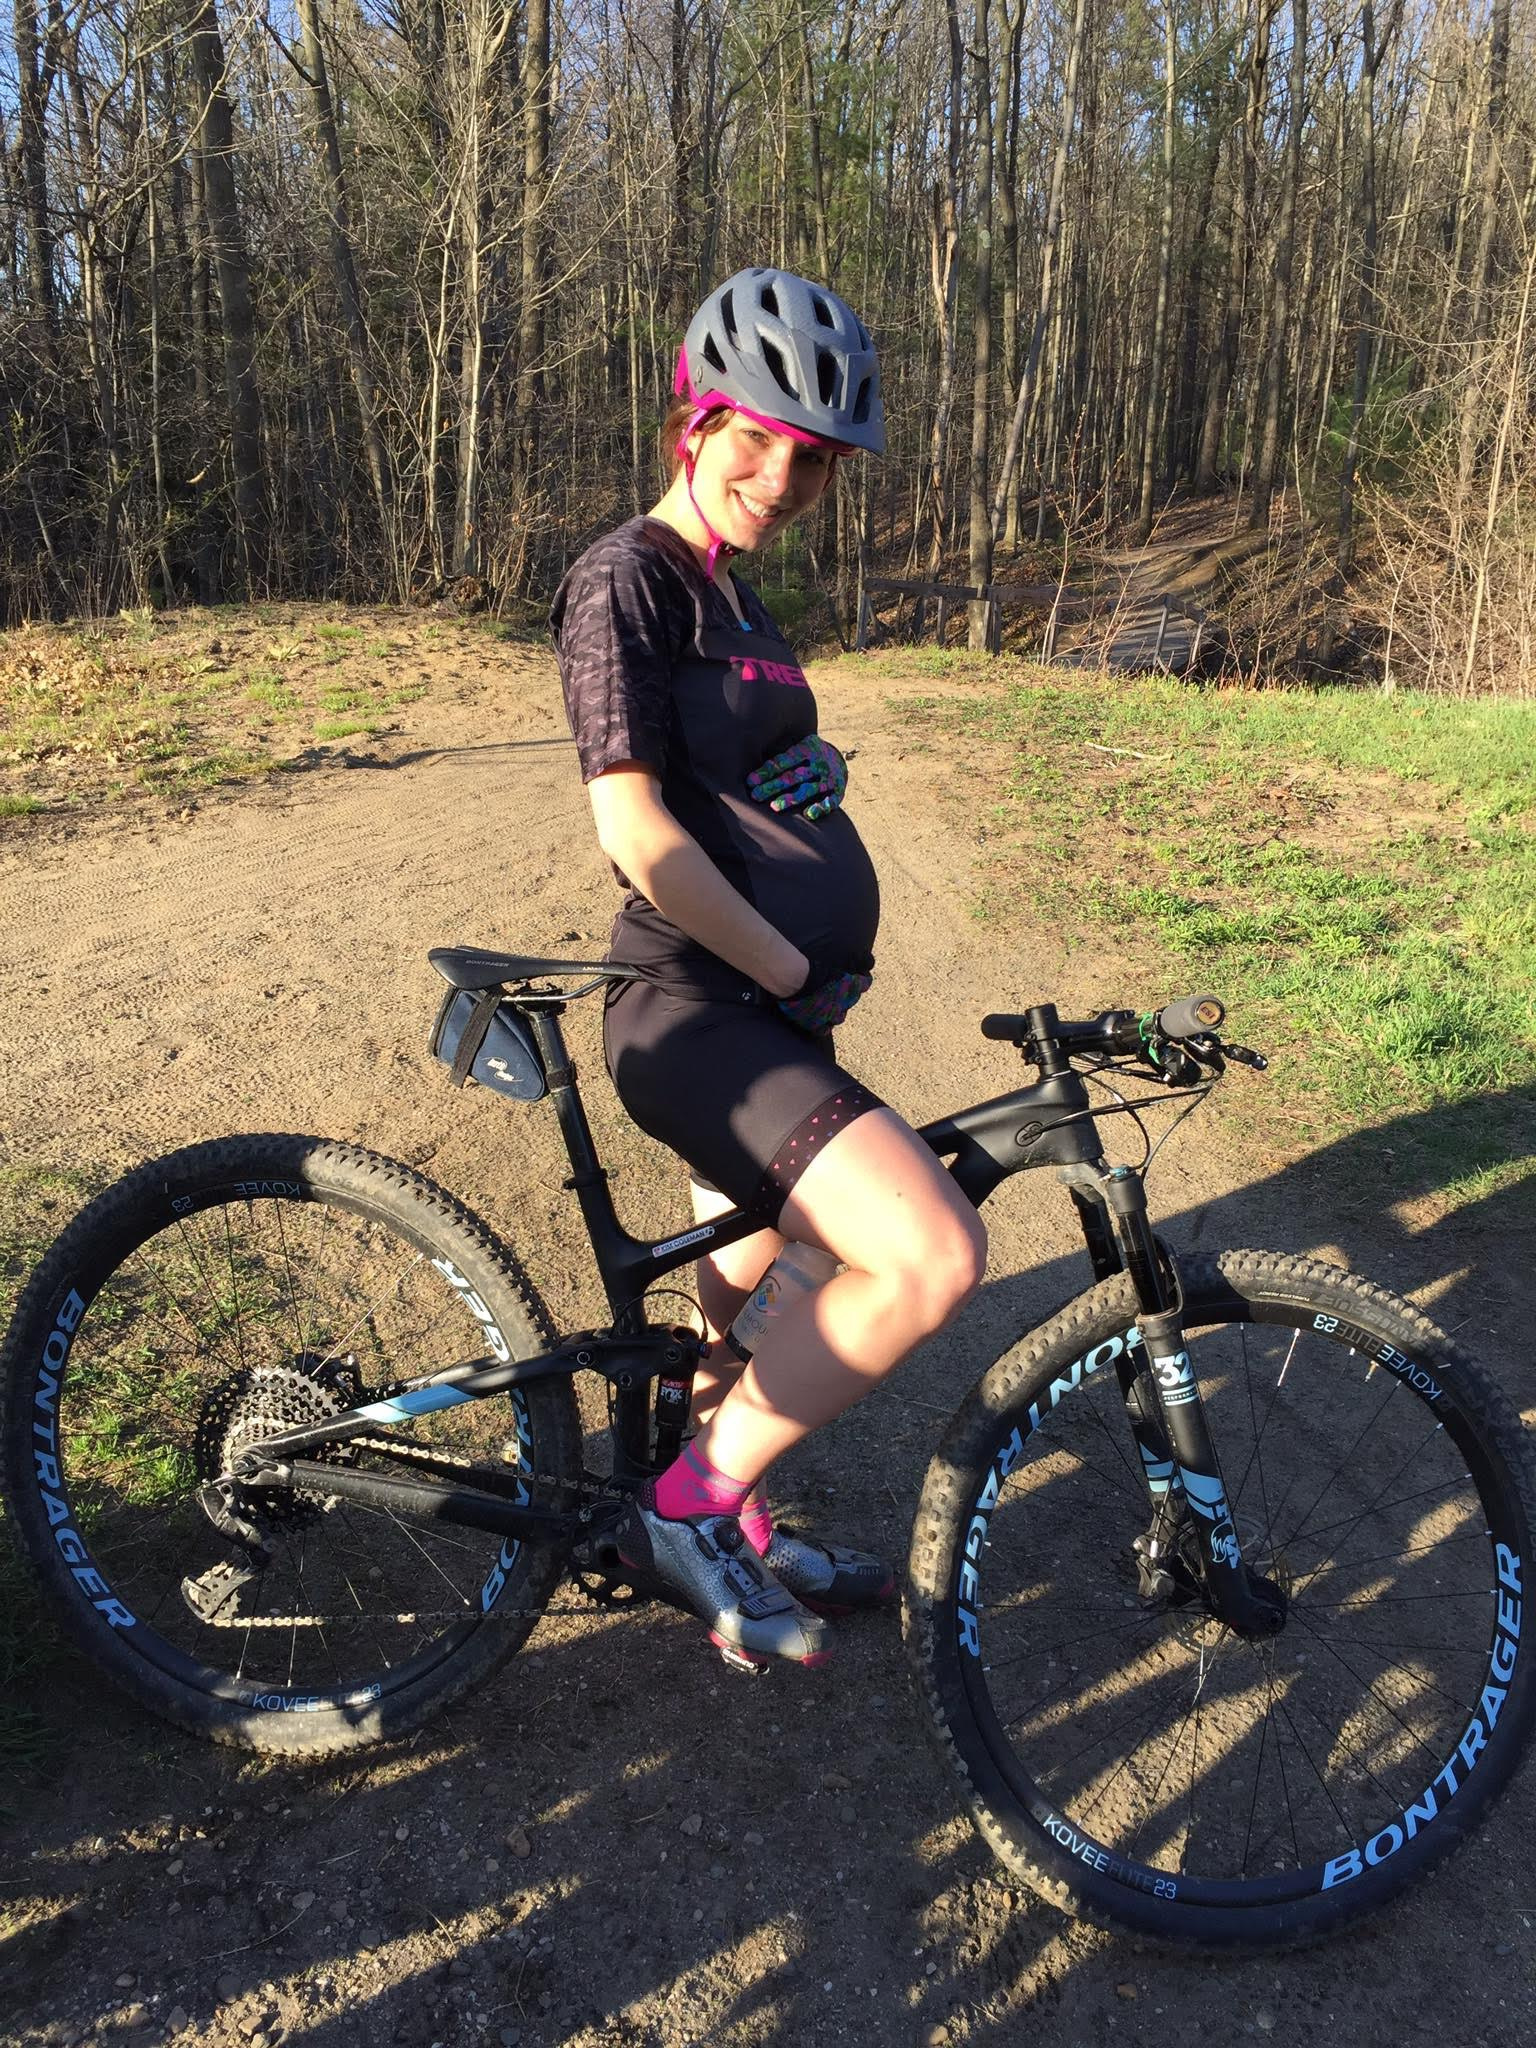 Kim Coleman  continued to ride during both pregnancies